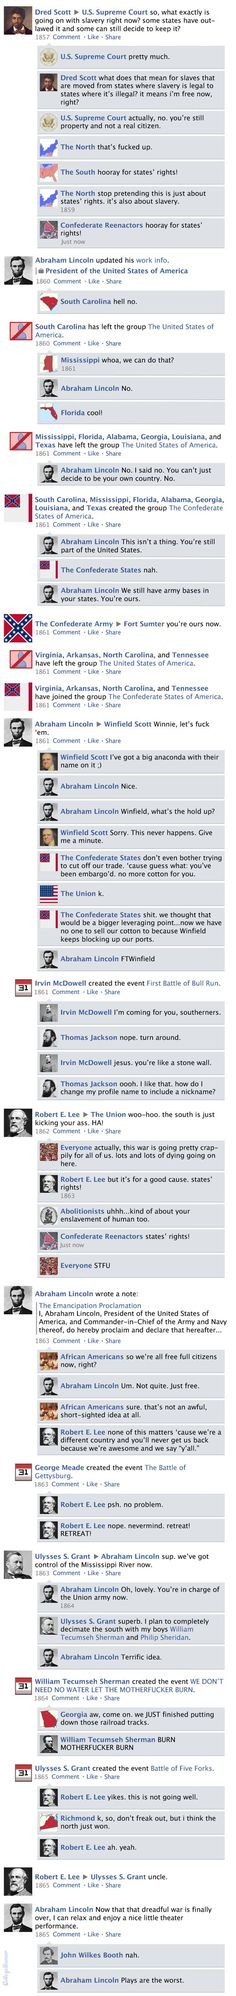 """Facebook Timeline History of the U.S. Civil War """"k, so, don't freak out, but i think the north just won."""":"""